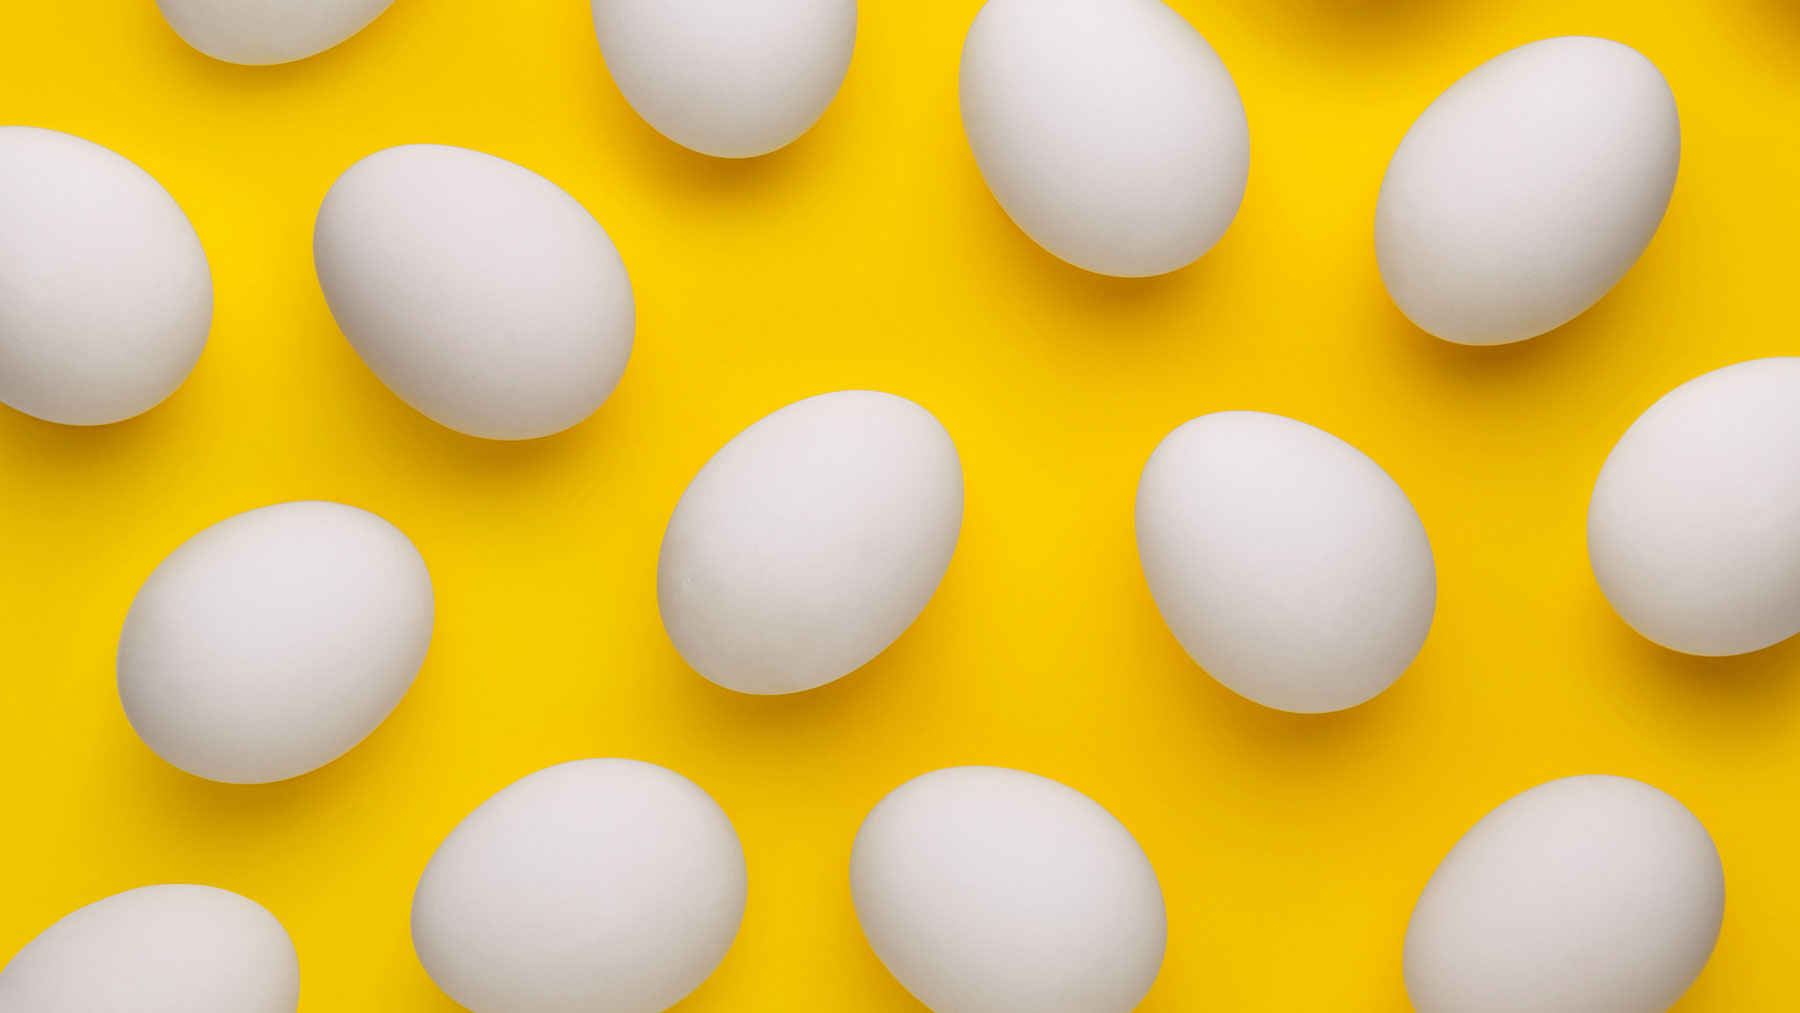 eggs on a yellow background: kitchen shortcuts